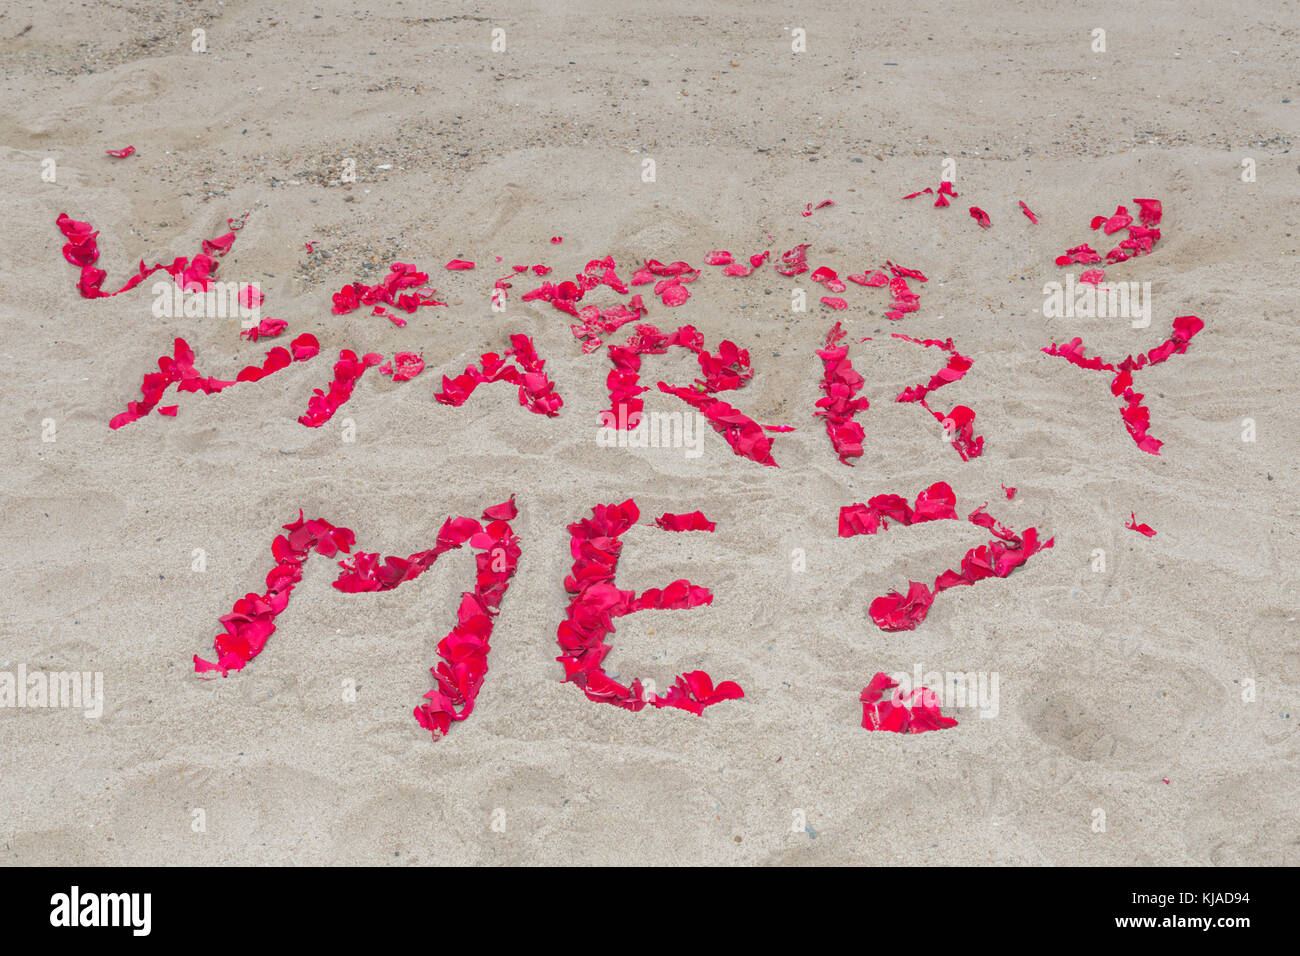 the question marry me spelled out in rose petals on an ocean beach, montuak, ny - Stock Image